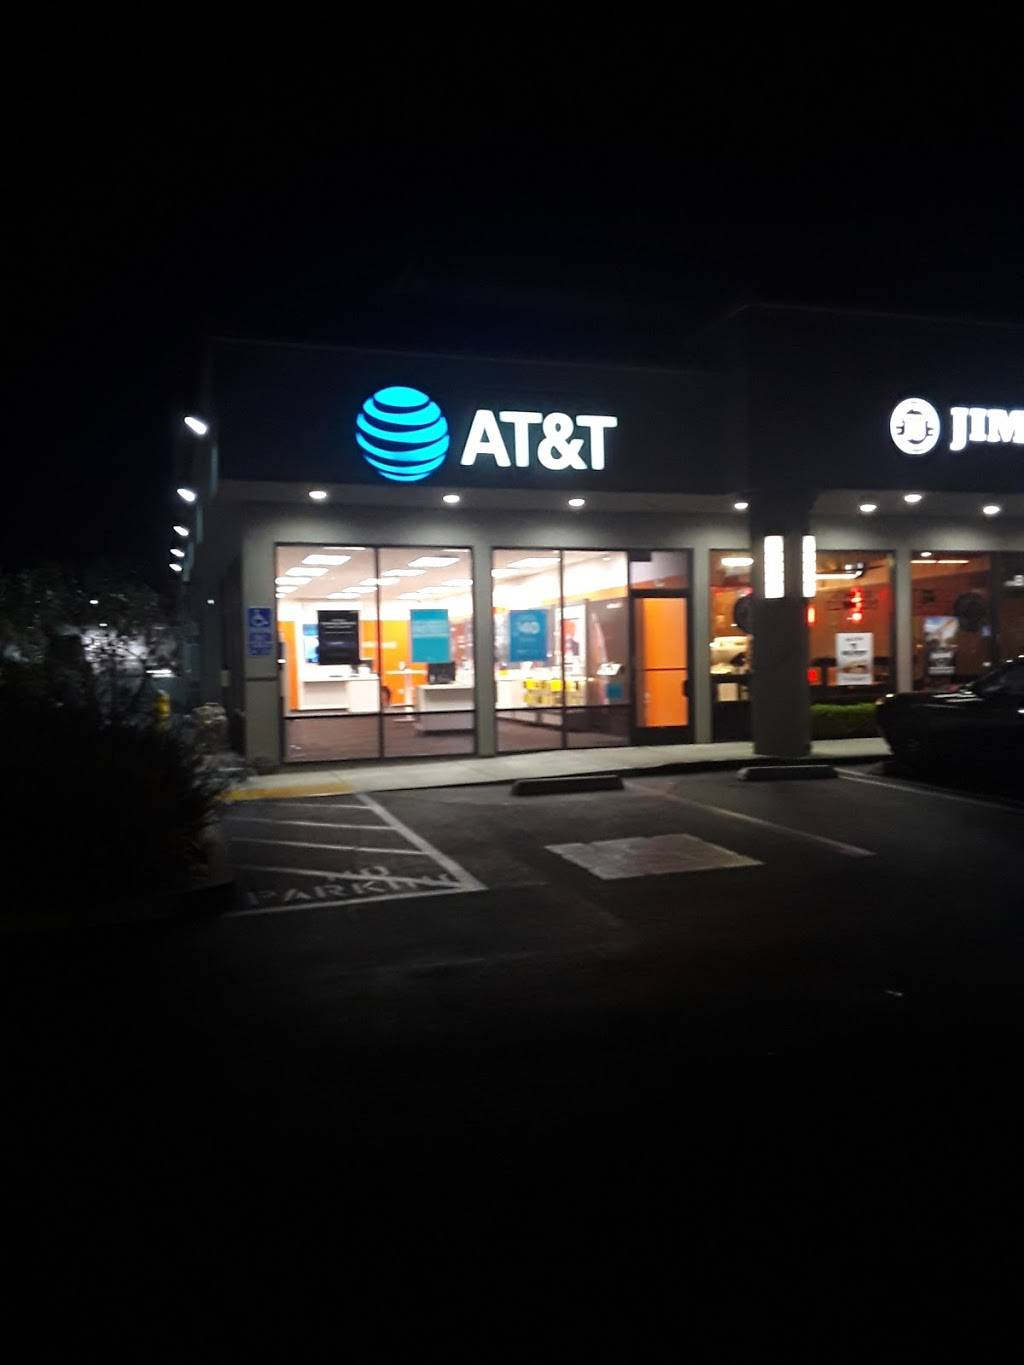 AT&T Store - electronics store  | Photo 10 of 10 | Address: 2800 Harbor Blvd Suite C, Costa Mesa, CA 92626, USA | Phone: (714) 432-0900